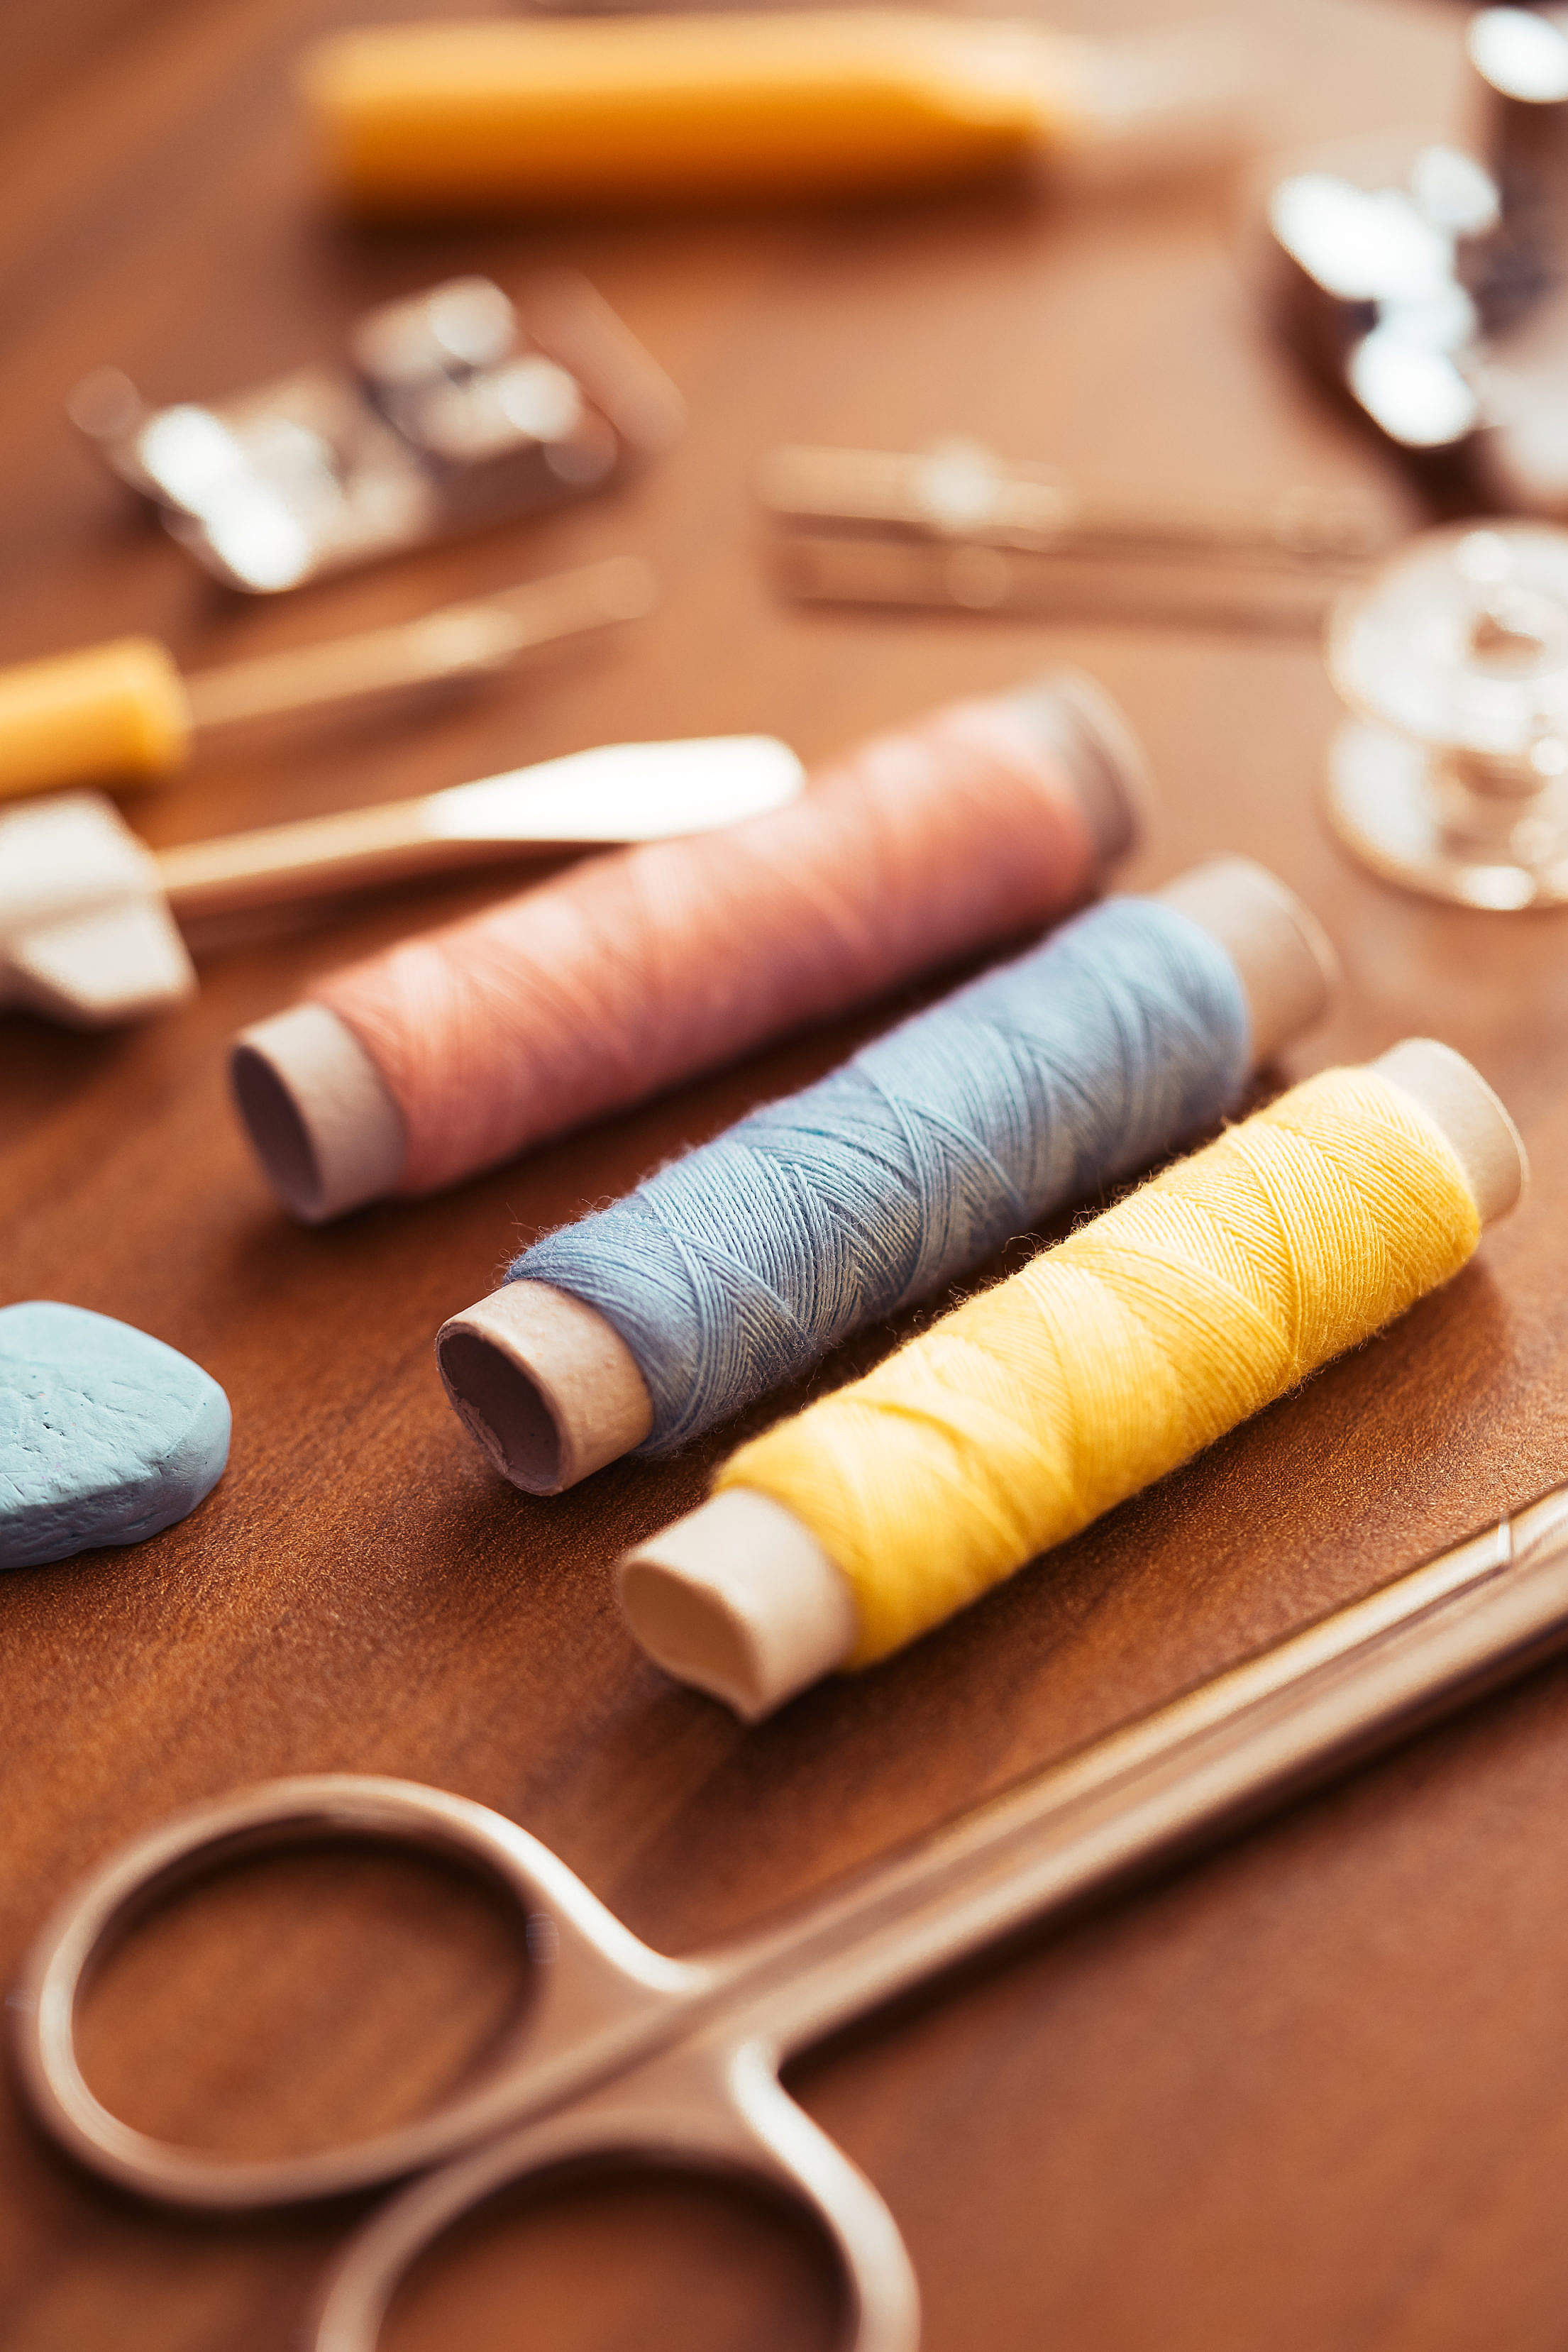 Sewing Kit on The Wooden Table Free Stock Photo